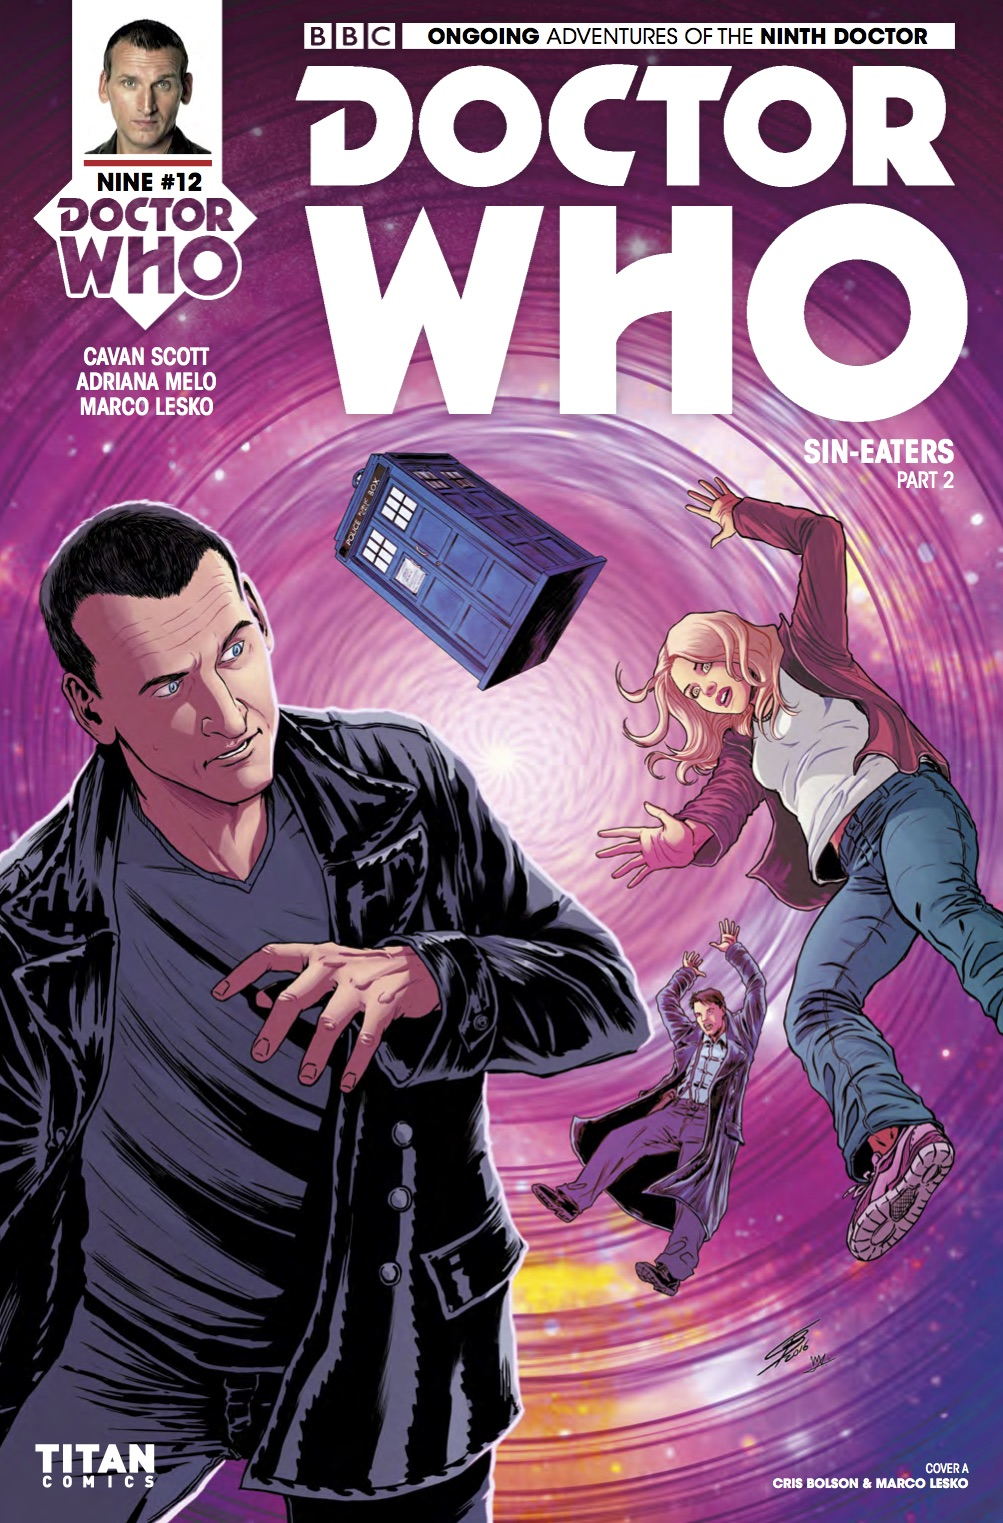 DOCTOR WHO: NINTH DOCTOR #12 Cover A (Credit: Titan CRIS BOLSON & MARCO LESKO)